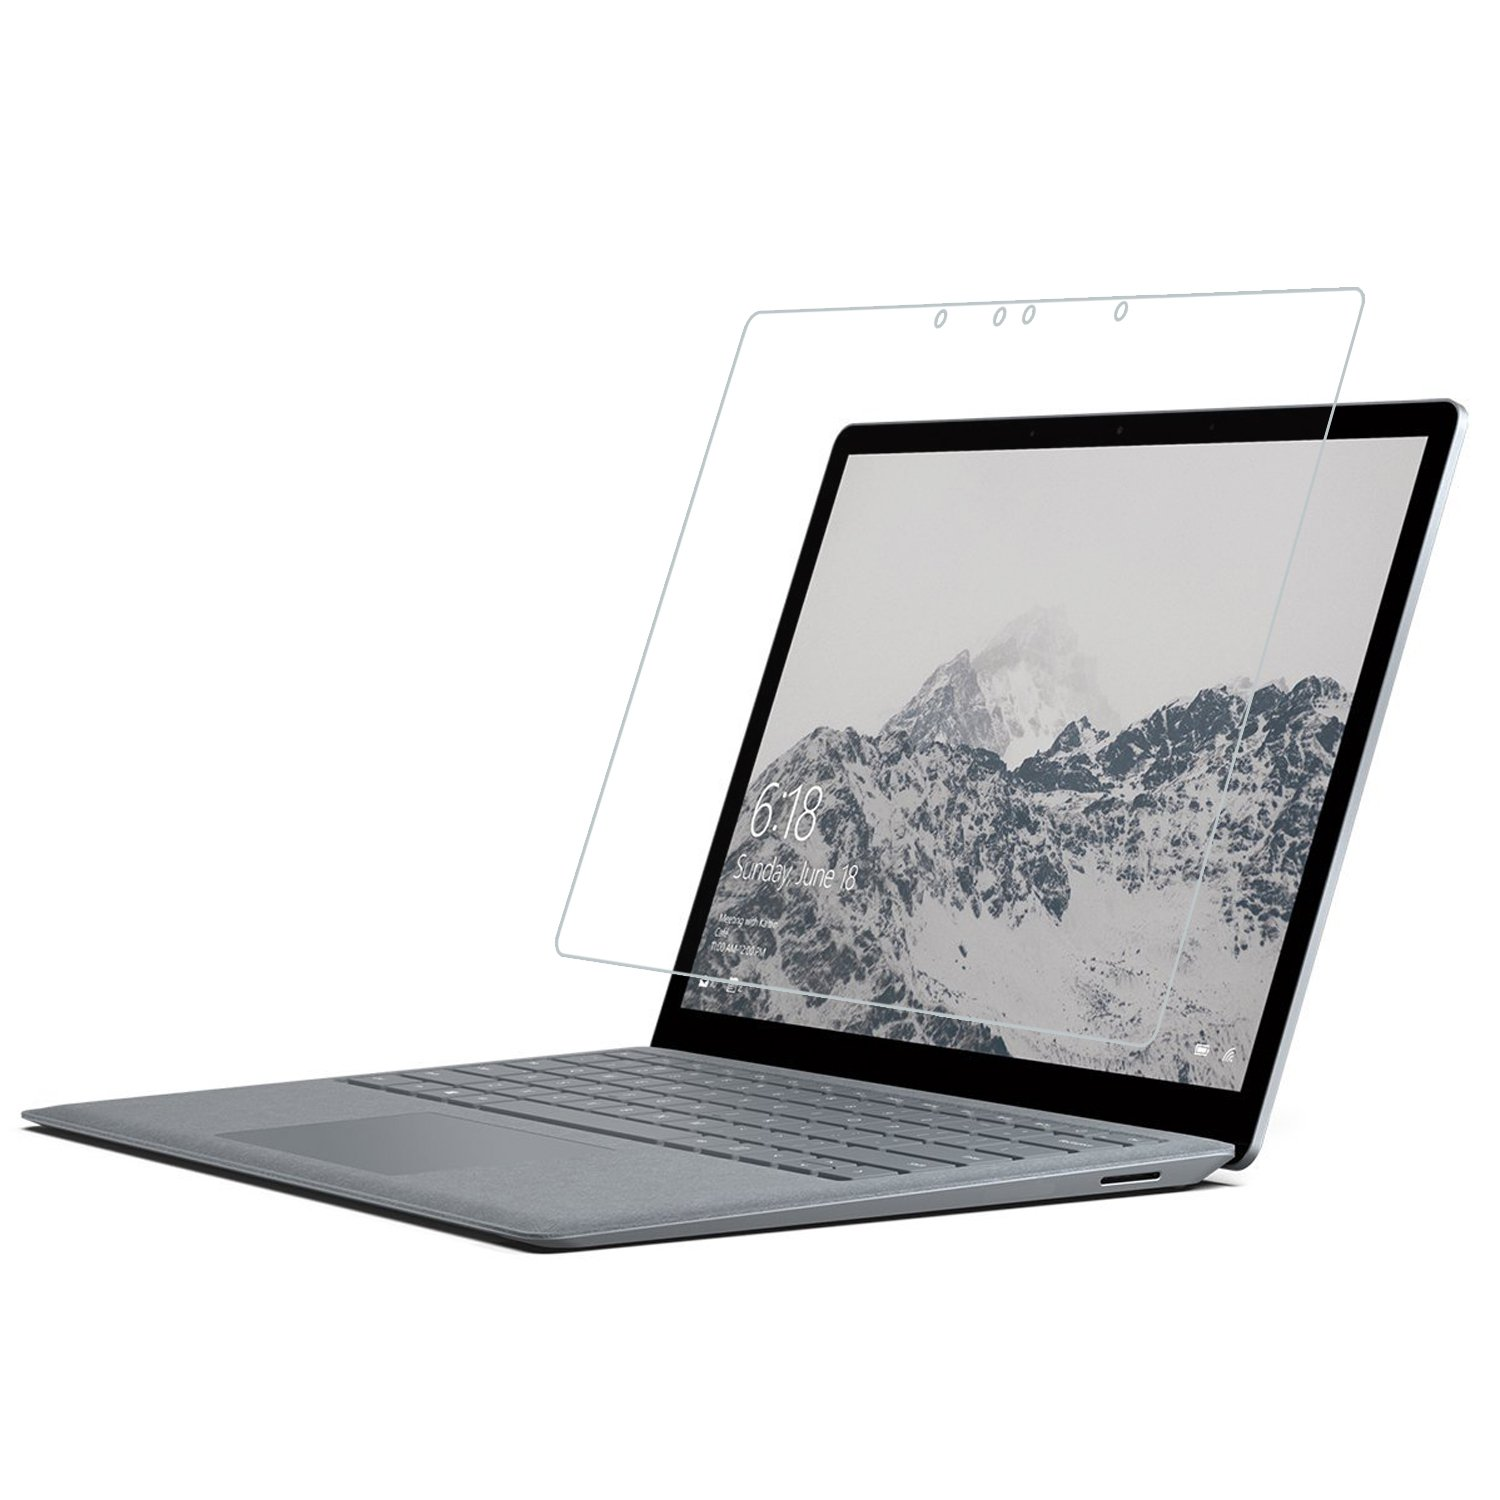 """RBEIK Microsoft Surface Laptop 13.5 Inch Screen Protector Glass, Premium Anti-Scratch Tempered Glass Screen Protector for Microsoft Surface Laptop 13.5"""" PixelSense Touchscreen 2017 Release"""